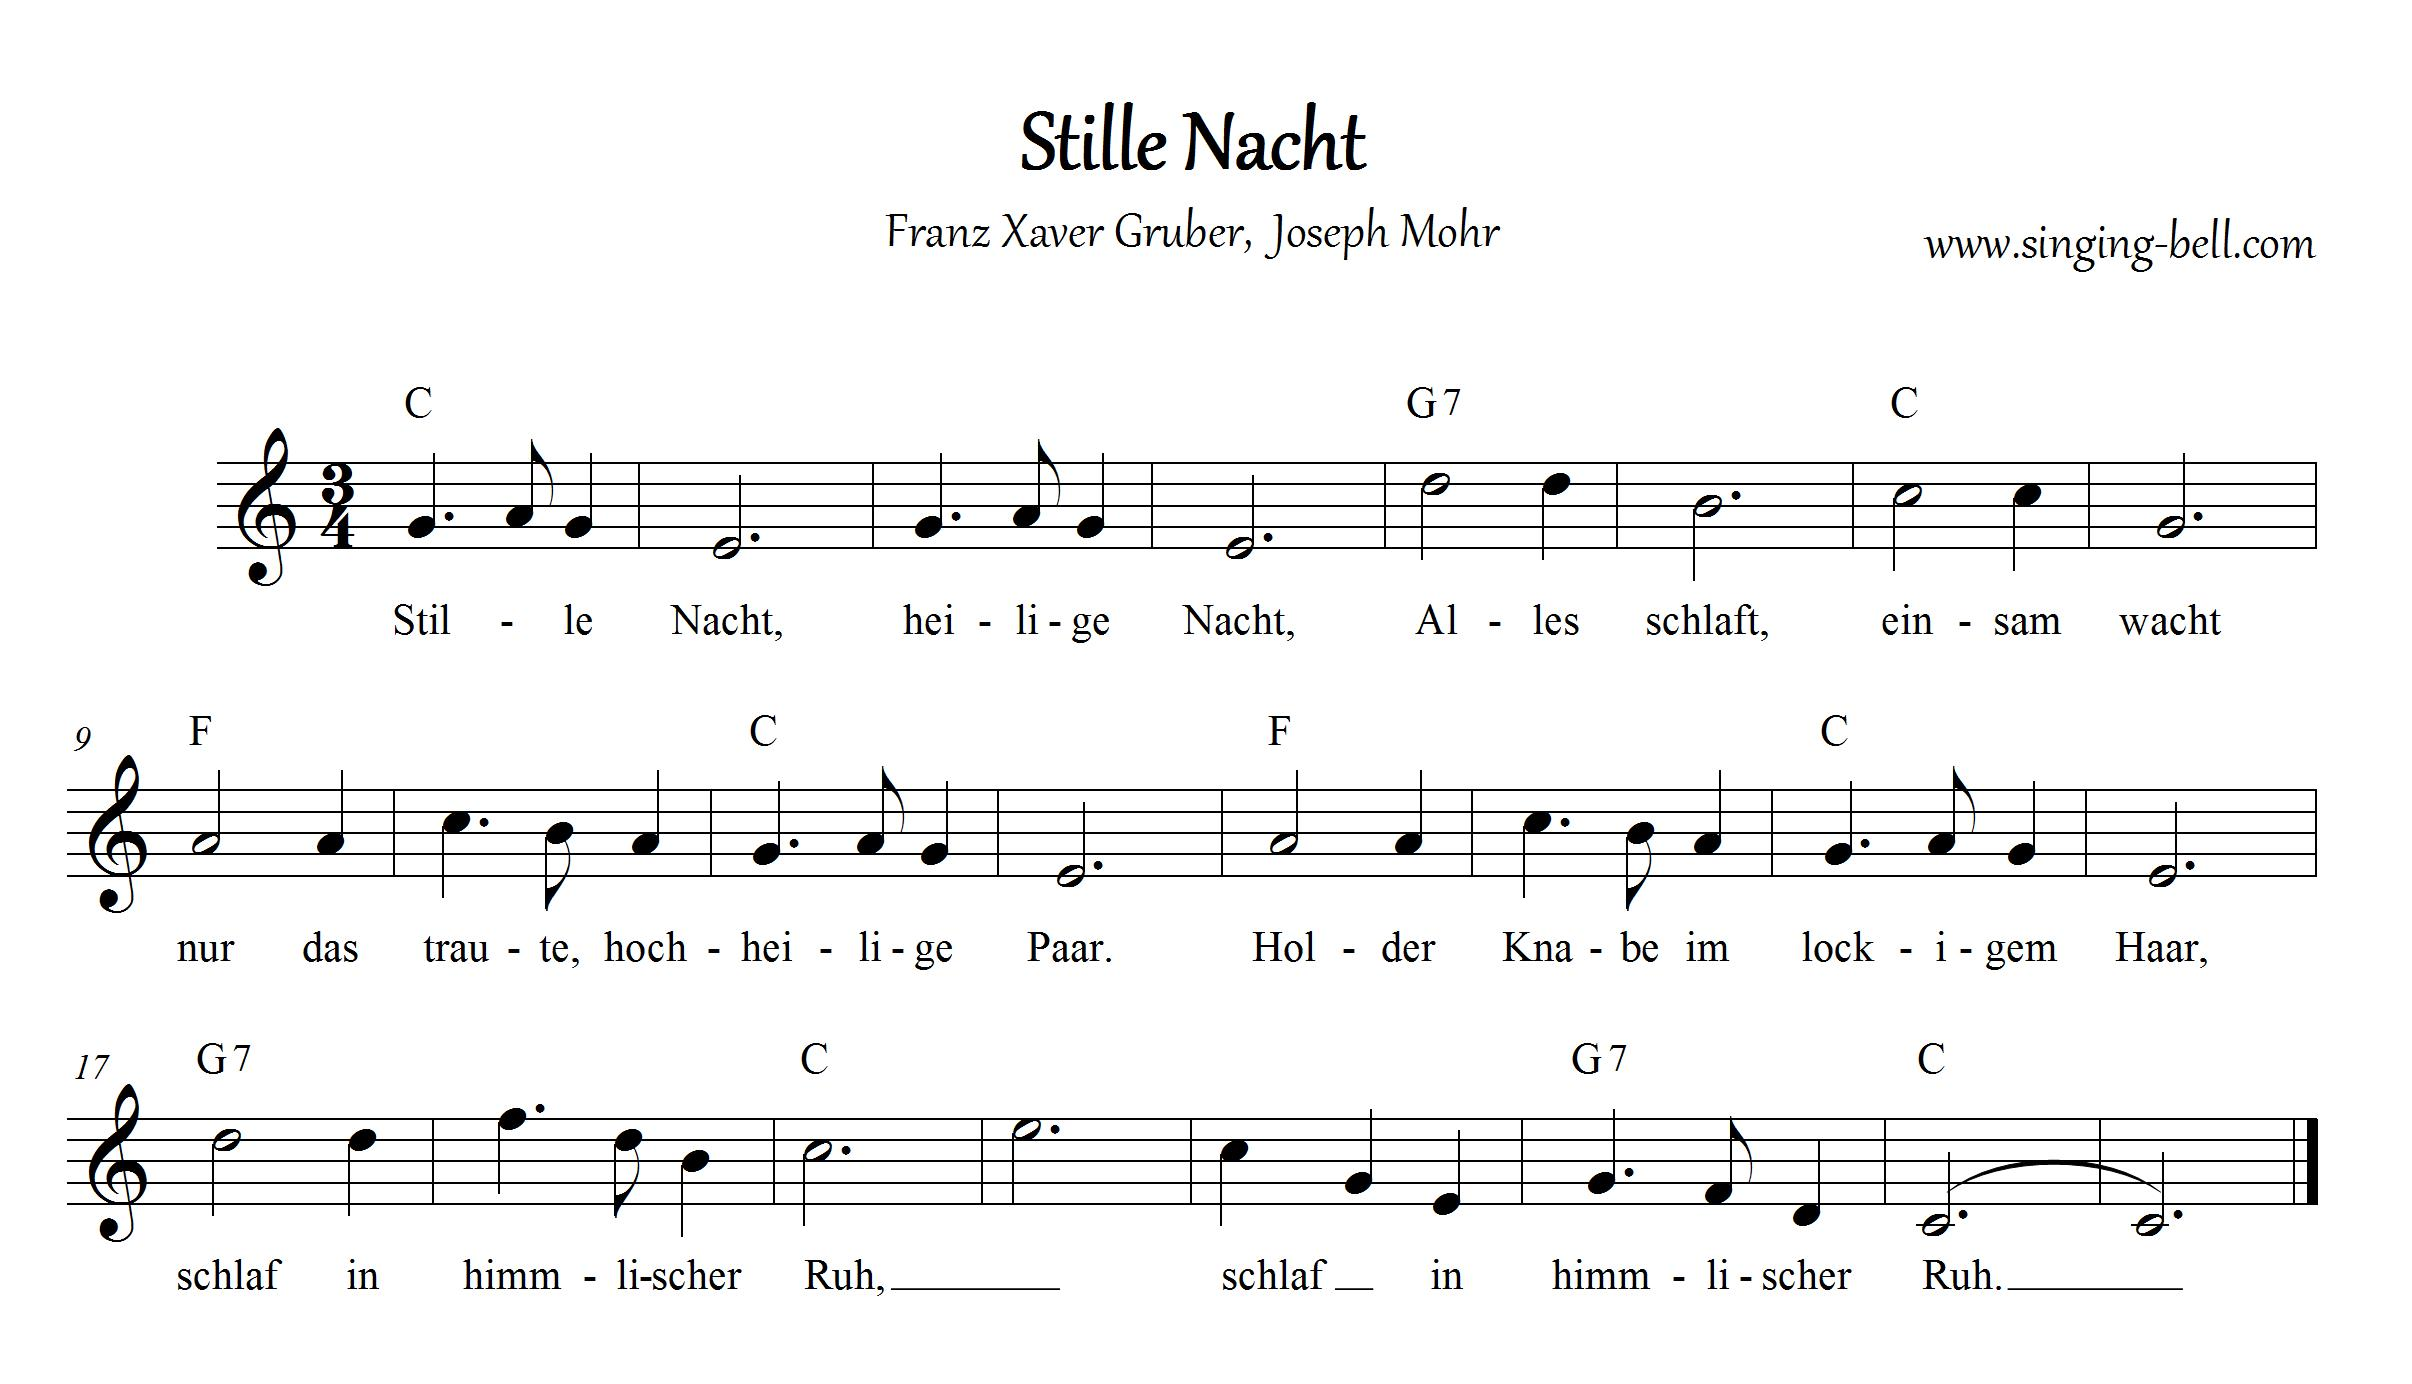 Stille Nacht C Singing Bell